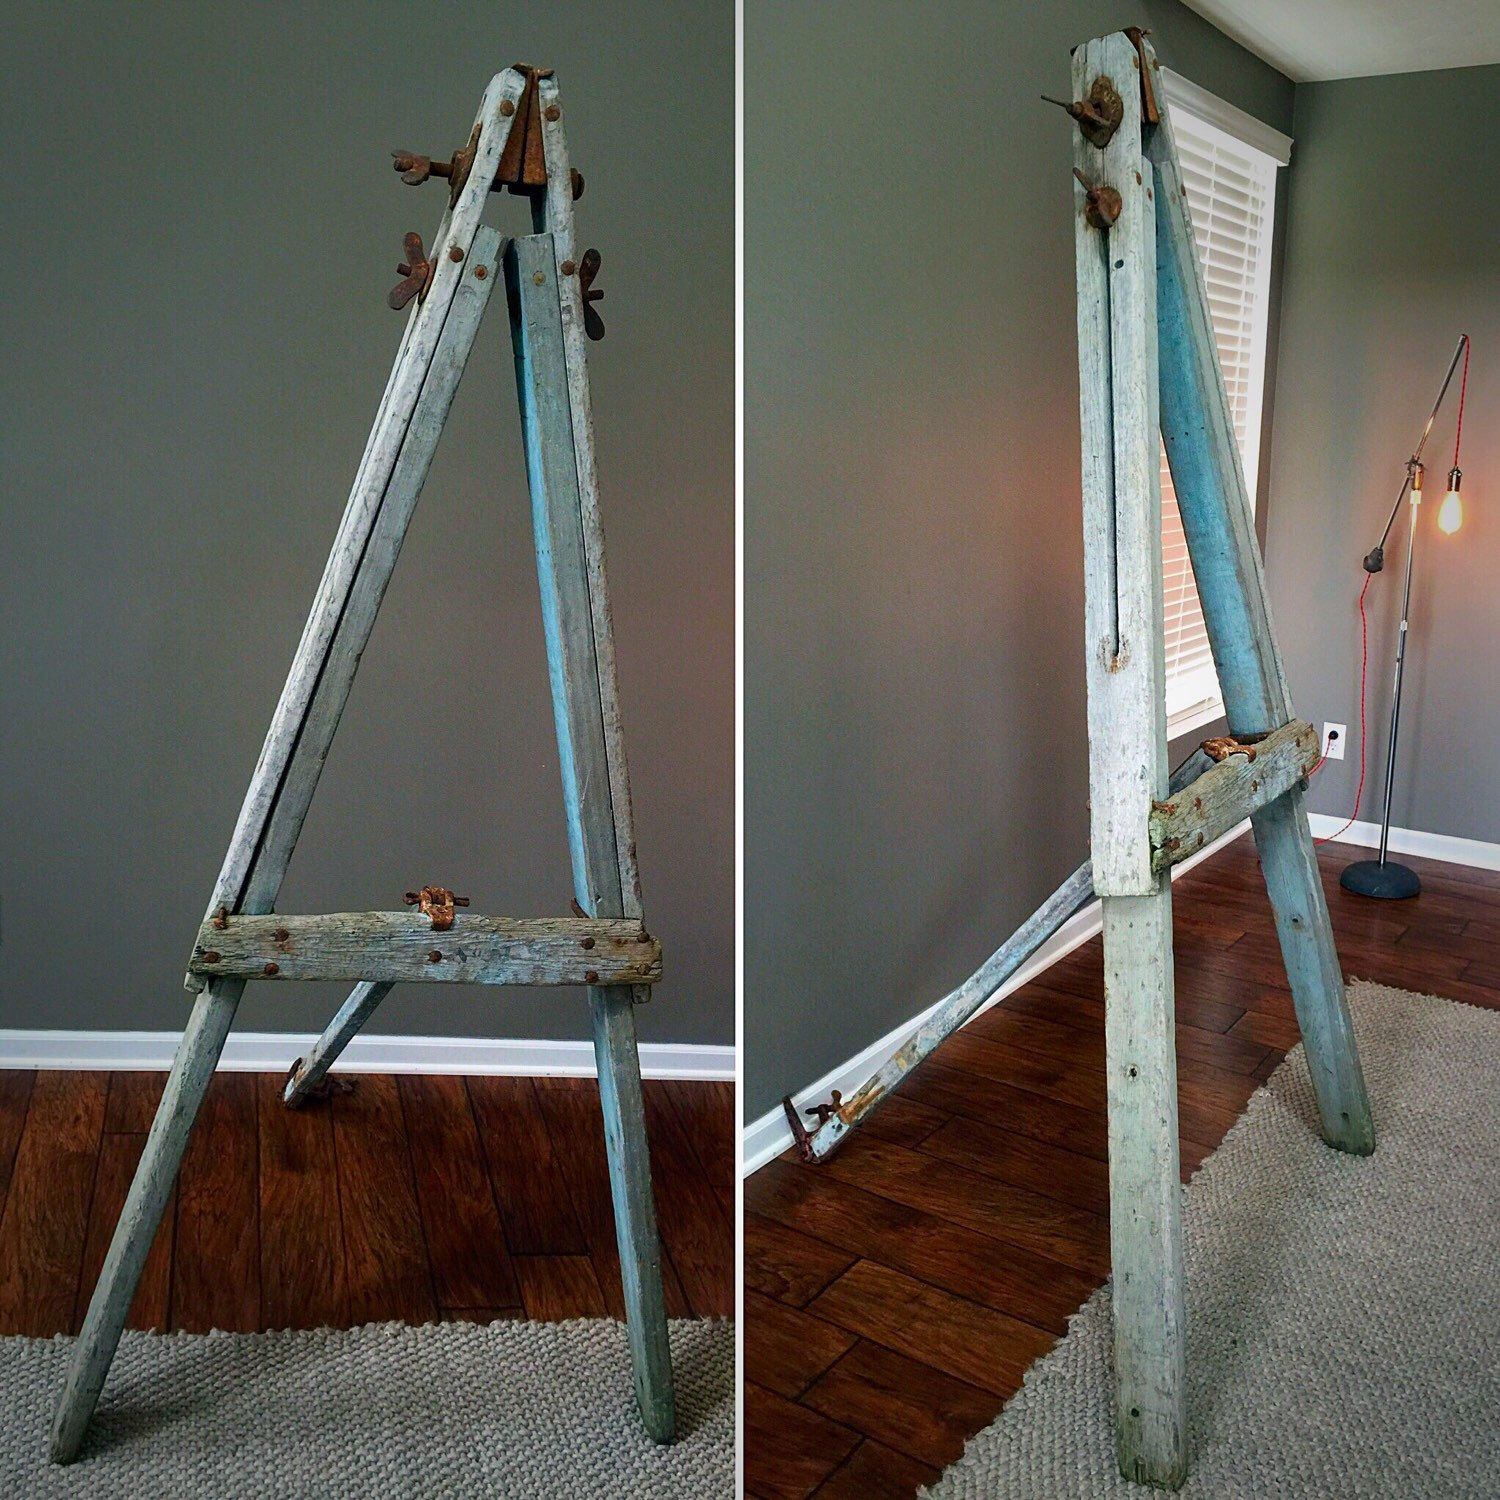 antique 75.5''-99.5'' tall large wood floor easel - adjustable art